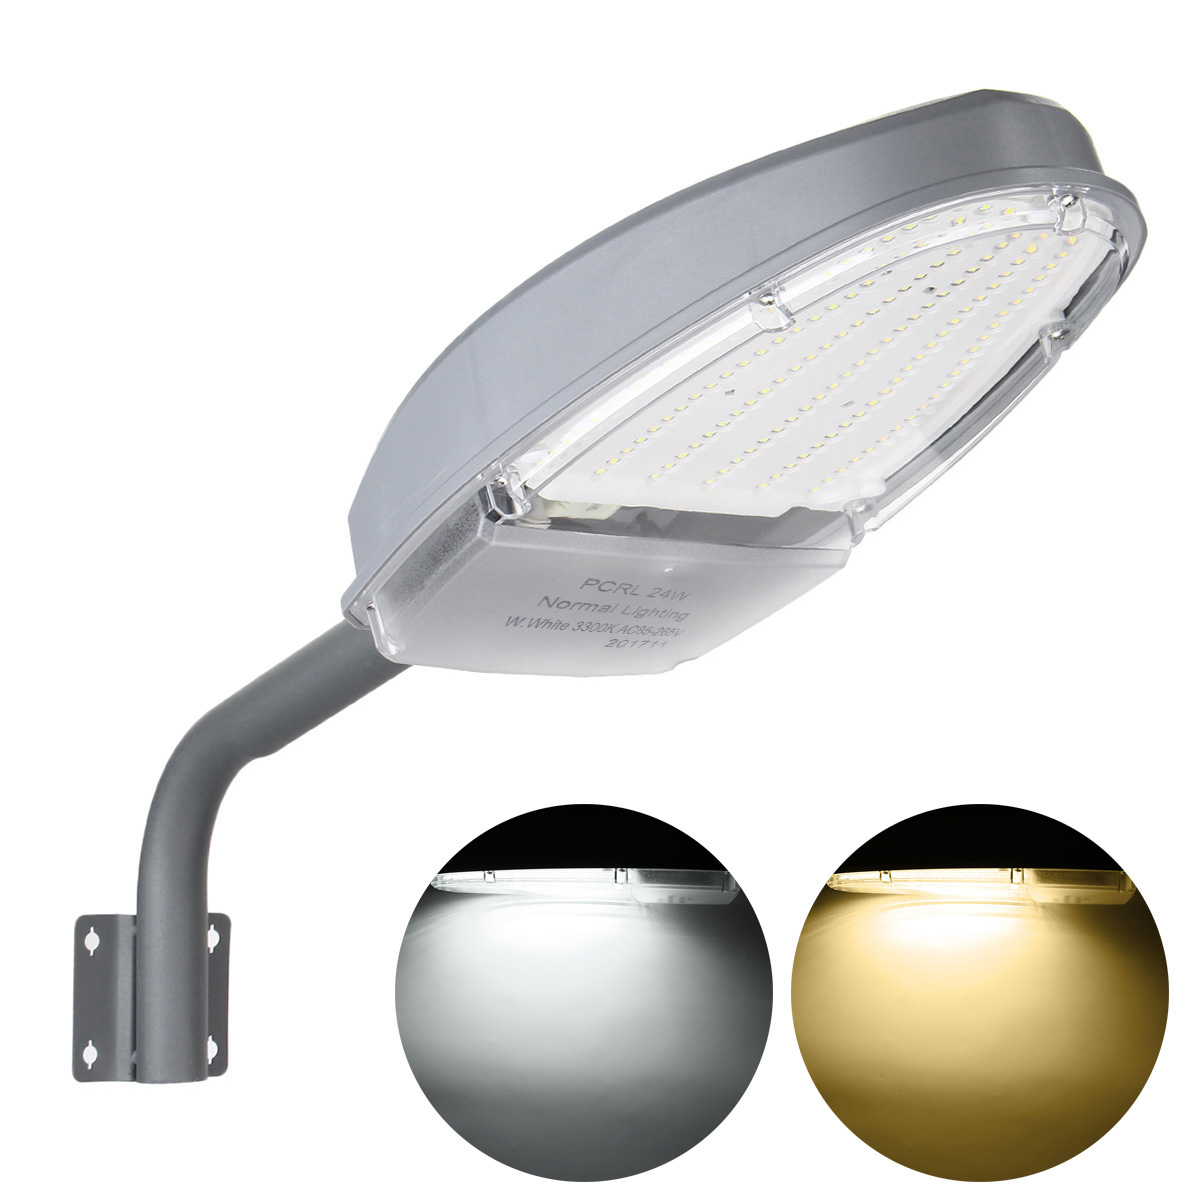 Alway Bright 24W LED Street Light Flood Road Light Garden Lamp Outdoor Yard LED Security Lighting AC85-265V Waterproof smuxi 24w 6500k white 3300k warm white led road street flood light garden lamp outdoor yard security ip65 energy conservation